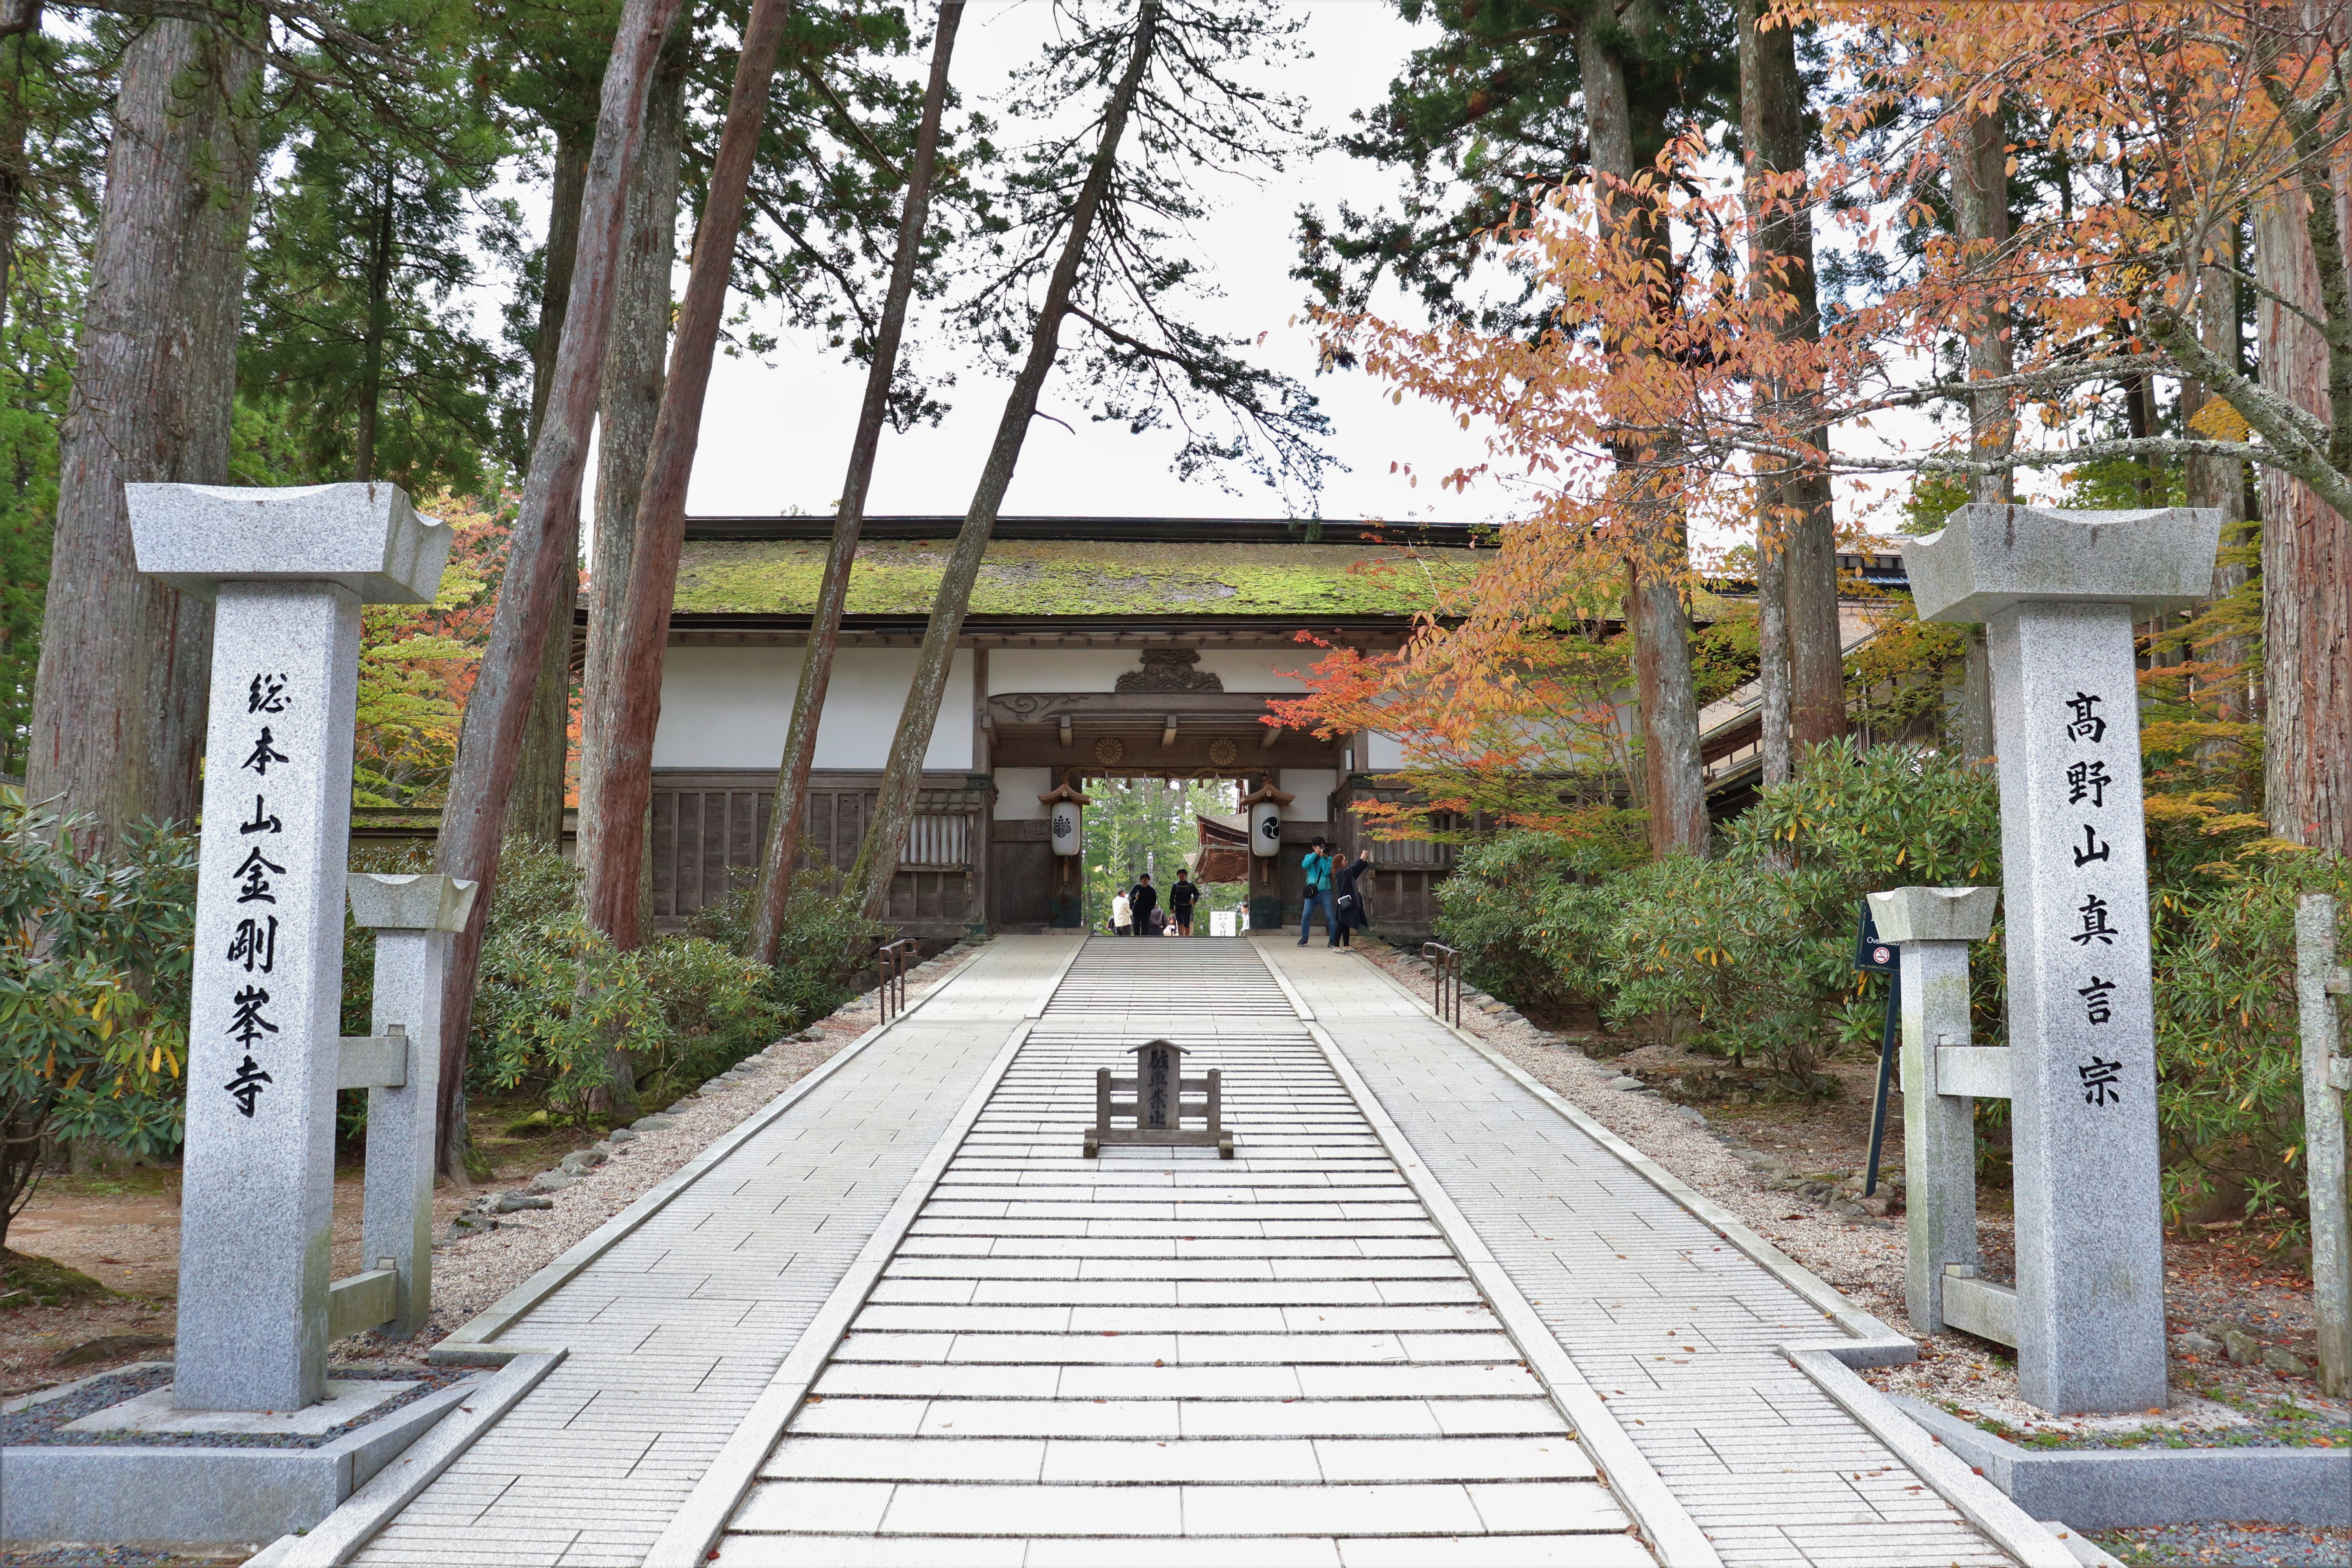 Kongobu-ji: Exploring Koyasan and Other Famous Sites